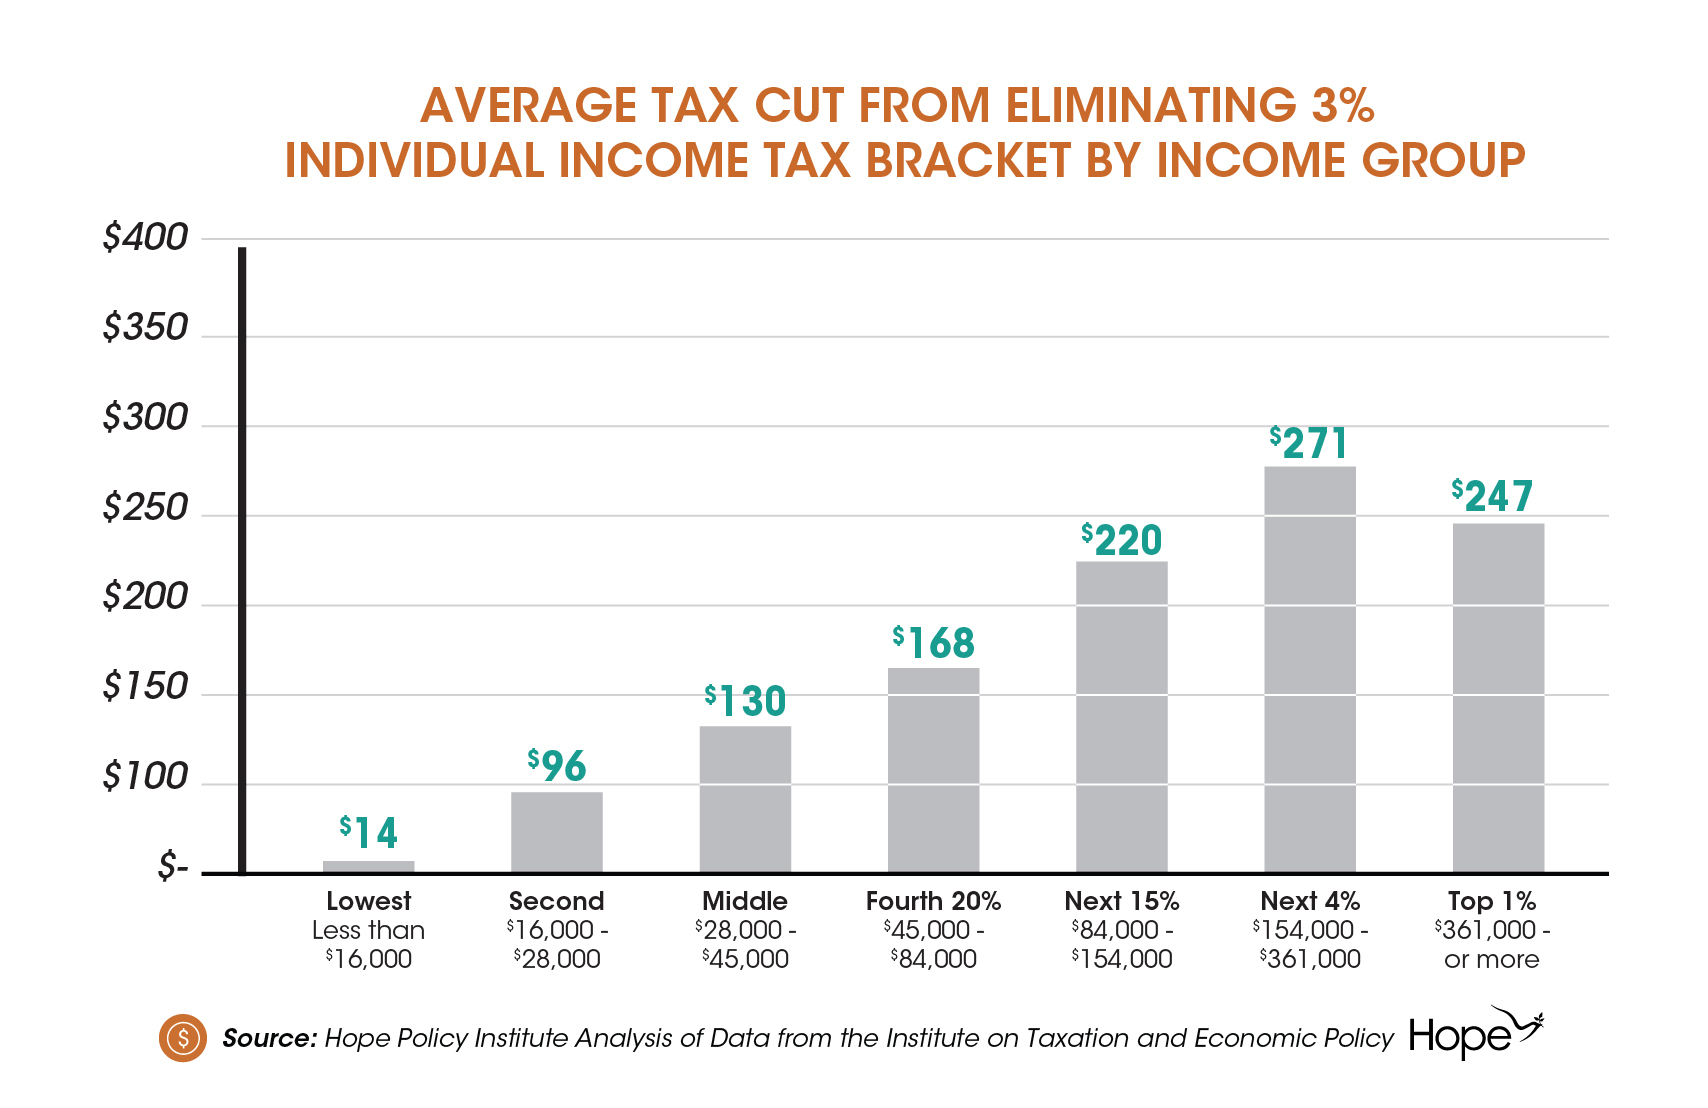 Average-Tax-Cut-from-Eliminating-3-percent-Individual-Income-Tax-Bracket-by-Income-Group-01